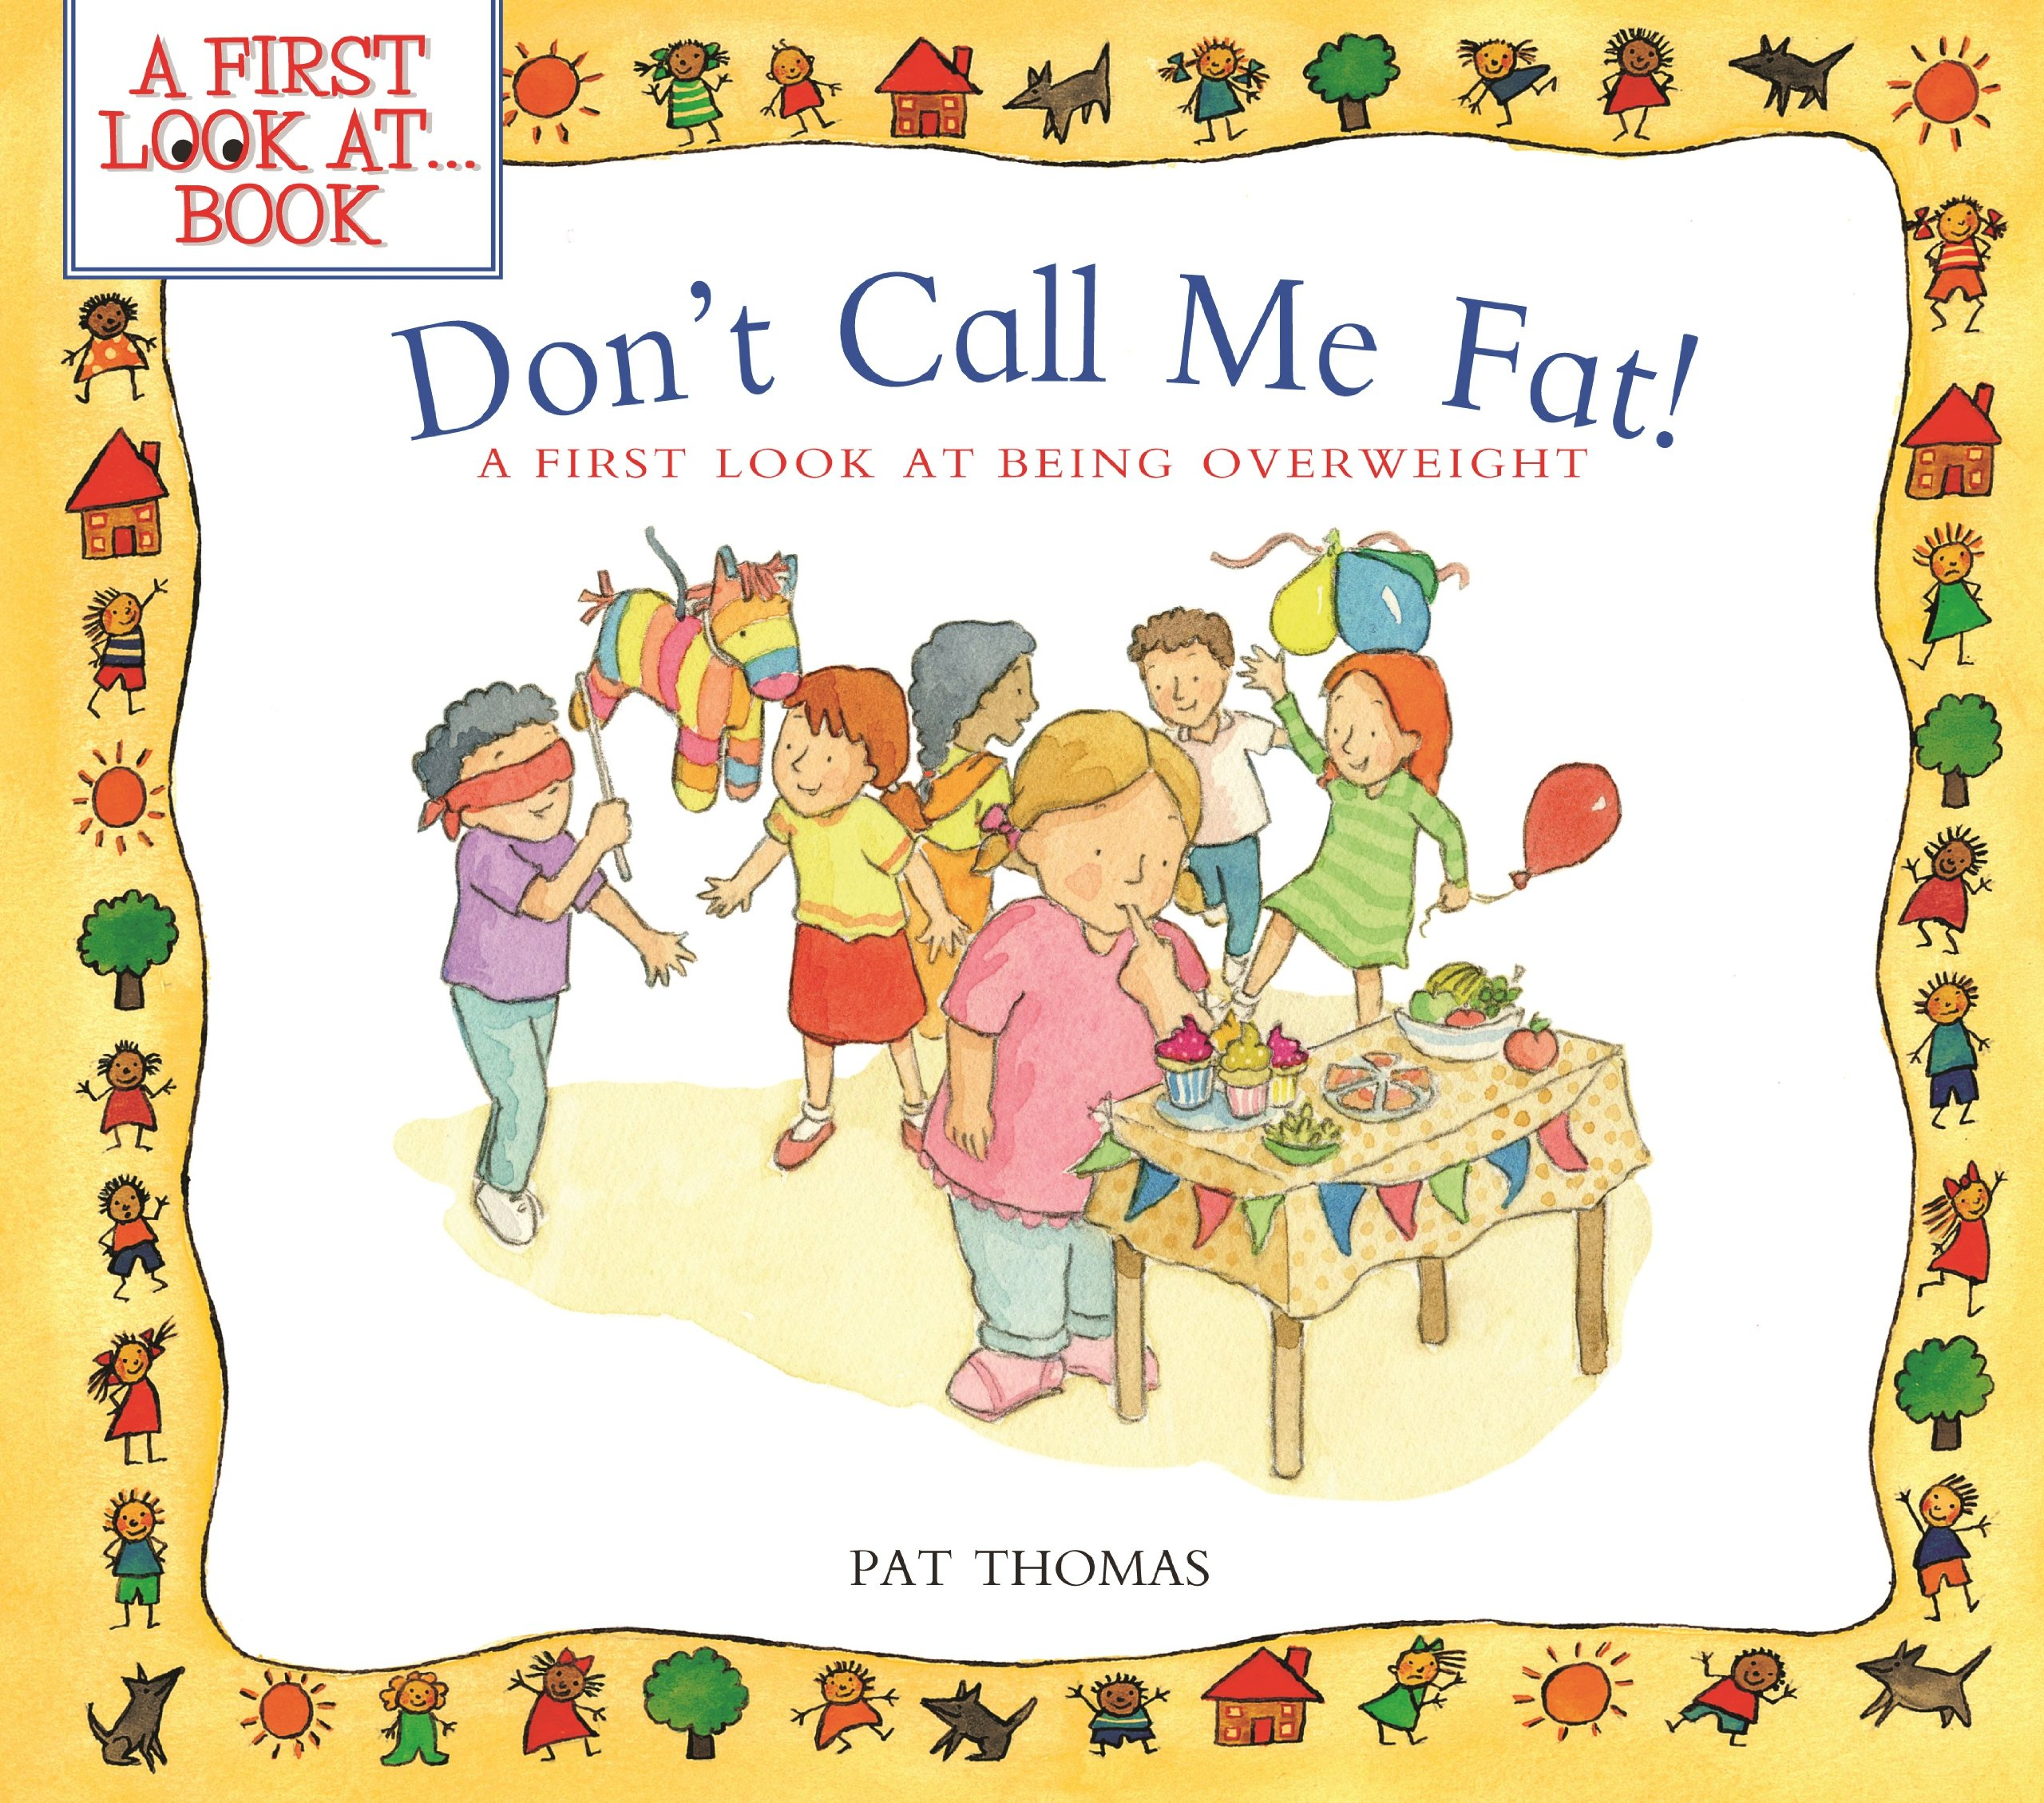 Don't Call Me Fat!: A First Look at Being Overweight (A First Look at...Series)